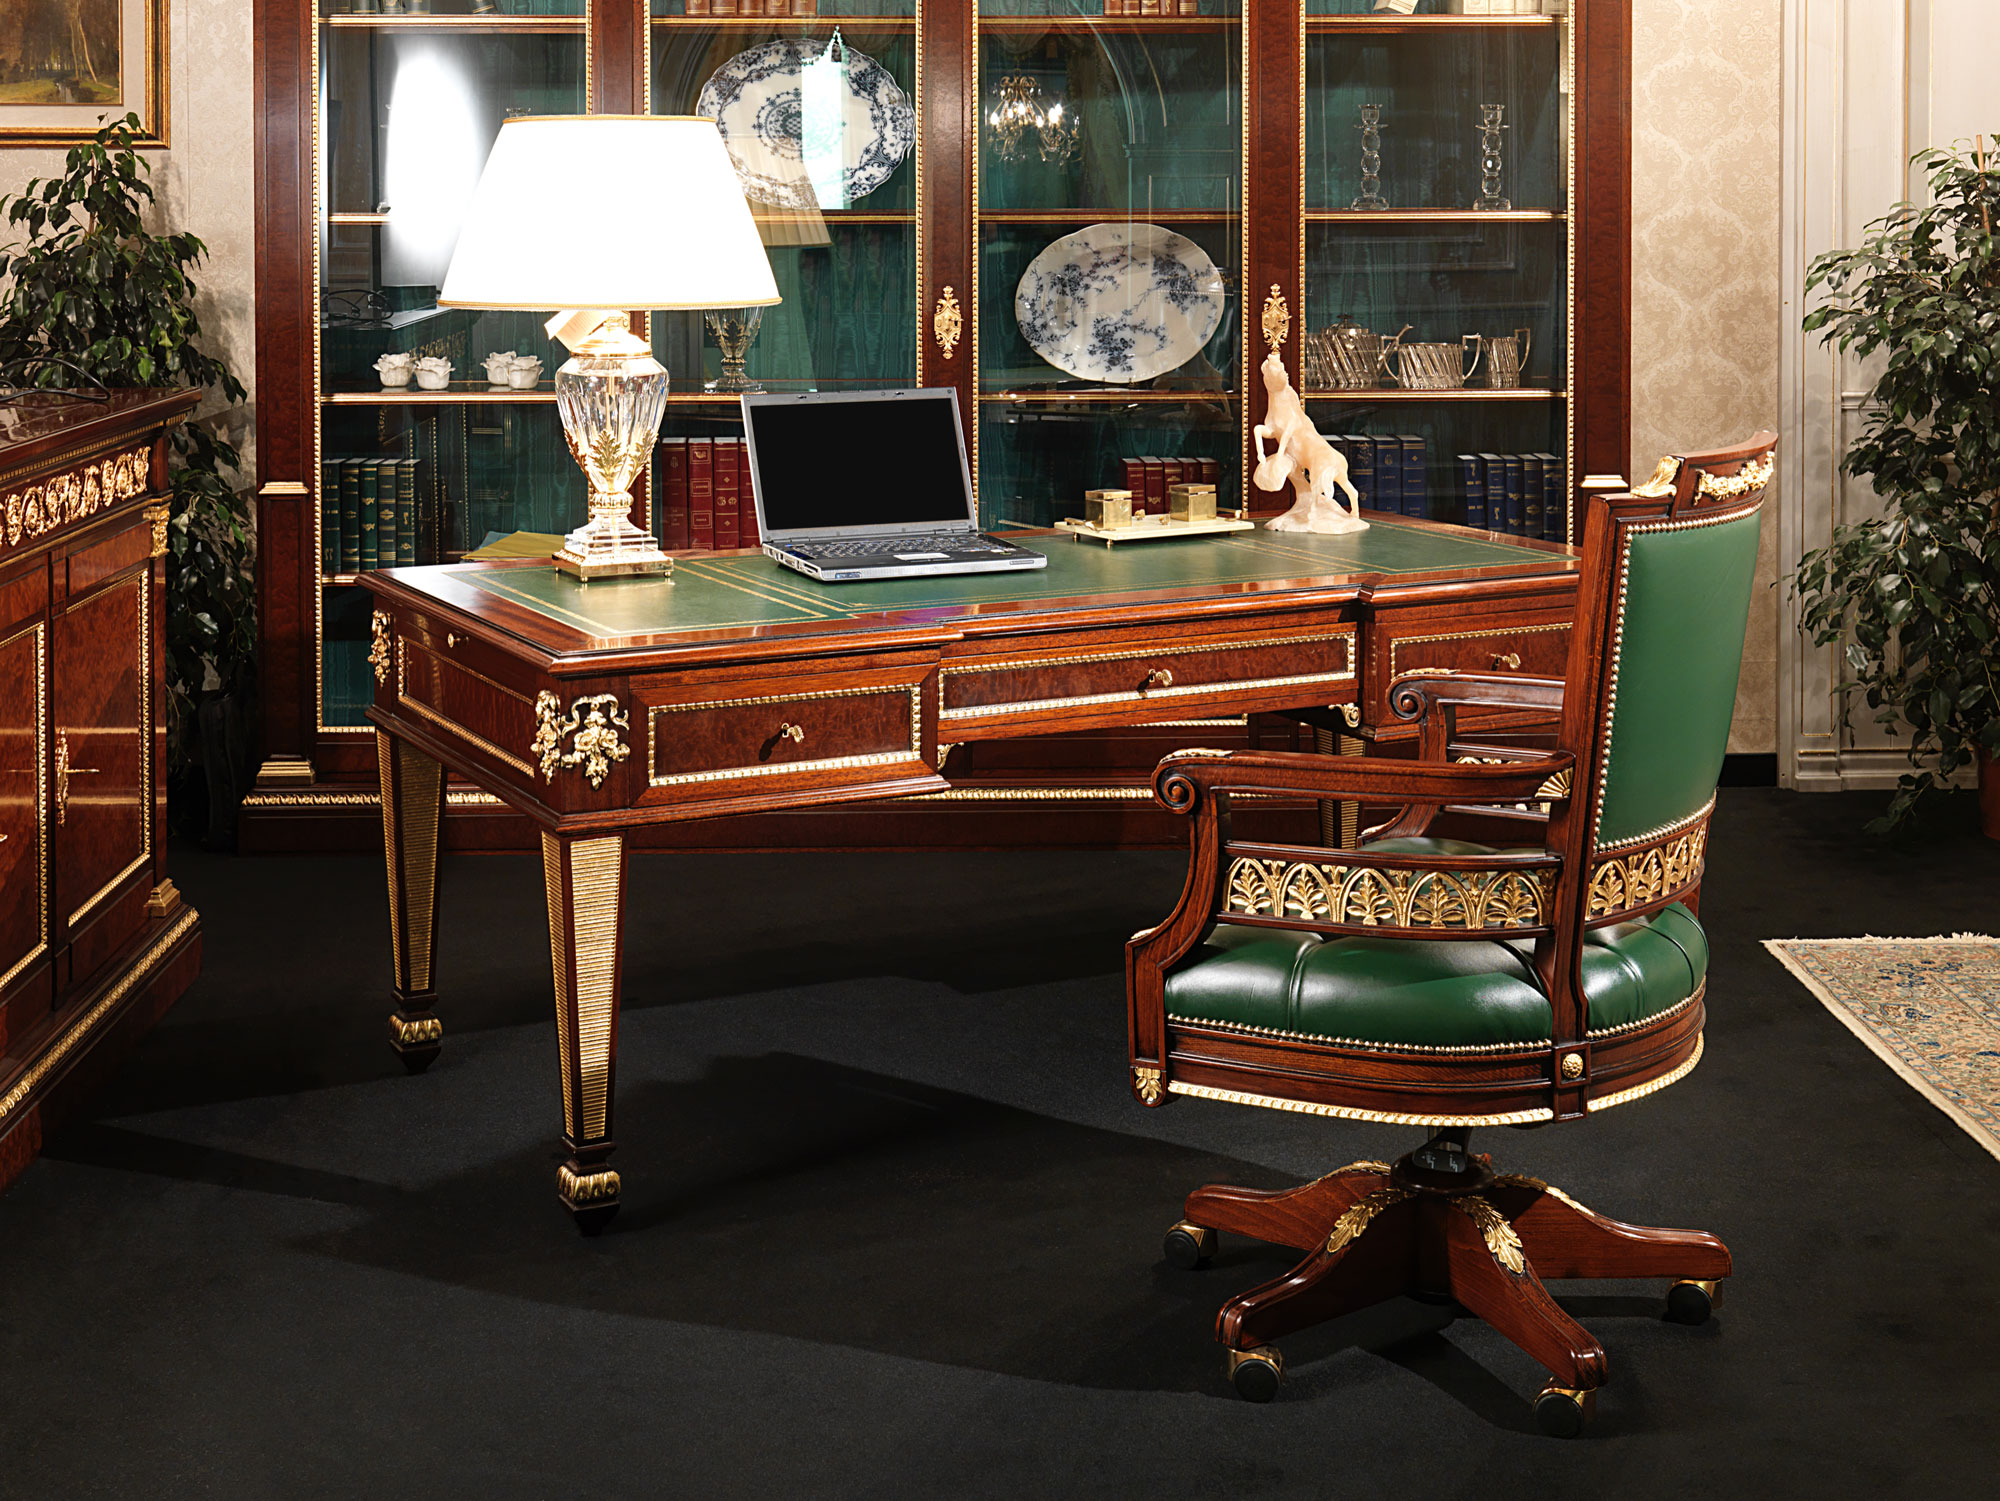 Luxury office furniture in classic style for Upscale home office furniture